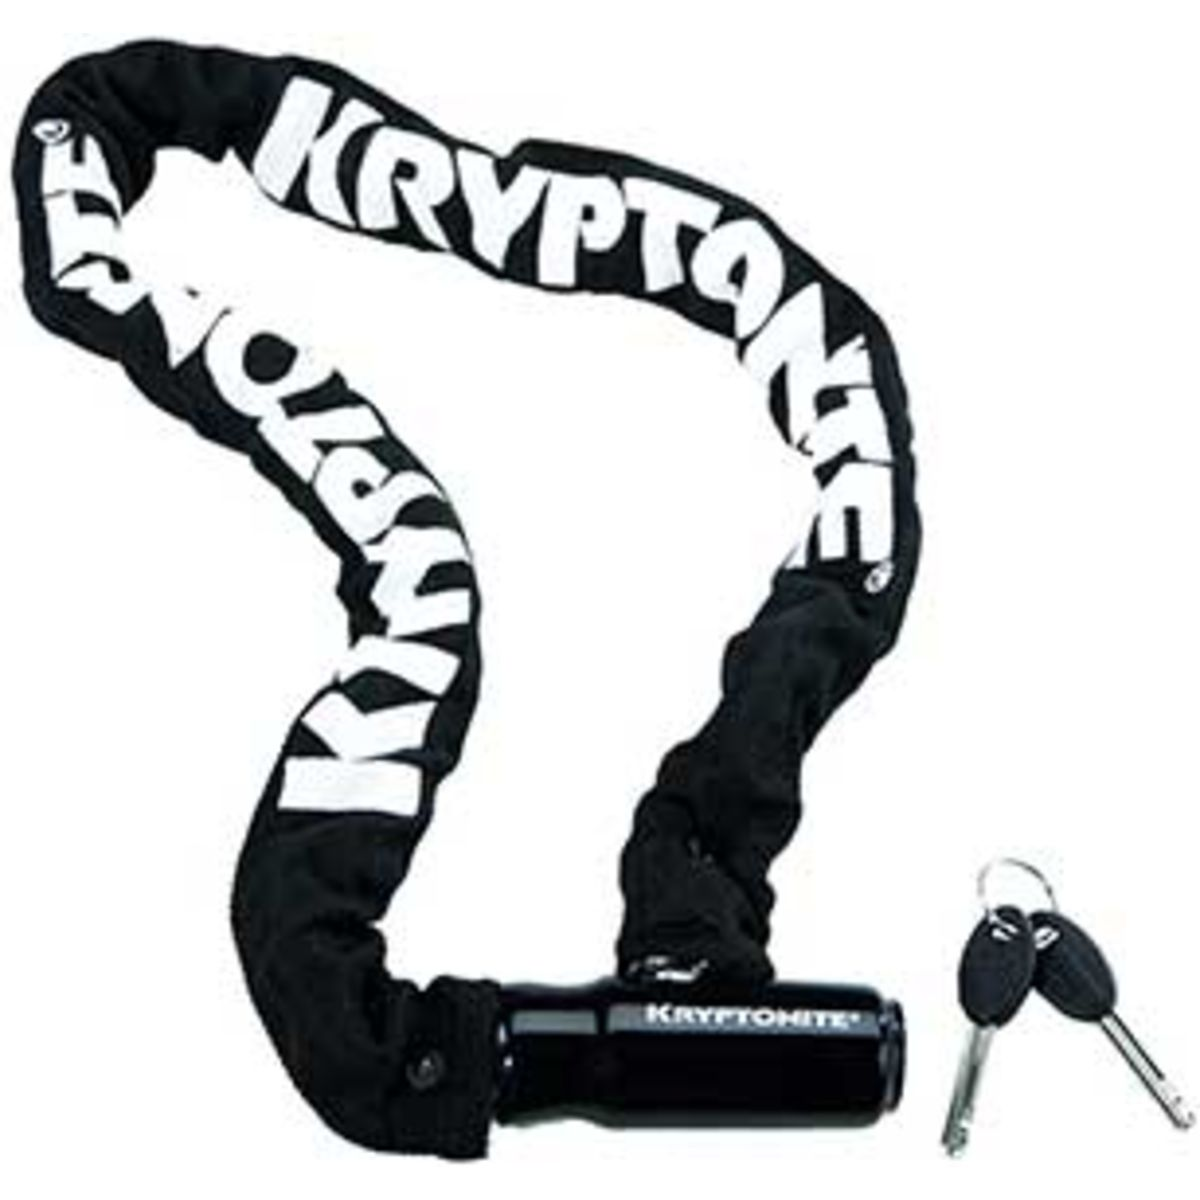 Keeper 785 Integrated Chain Lock